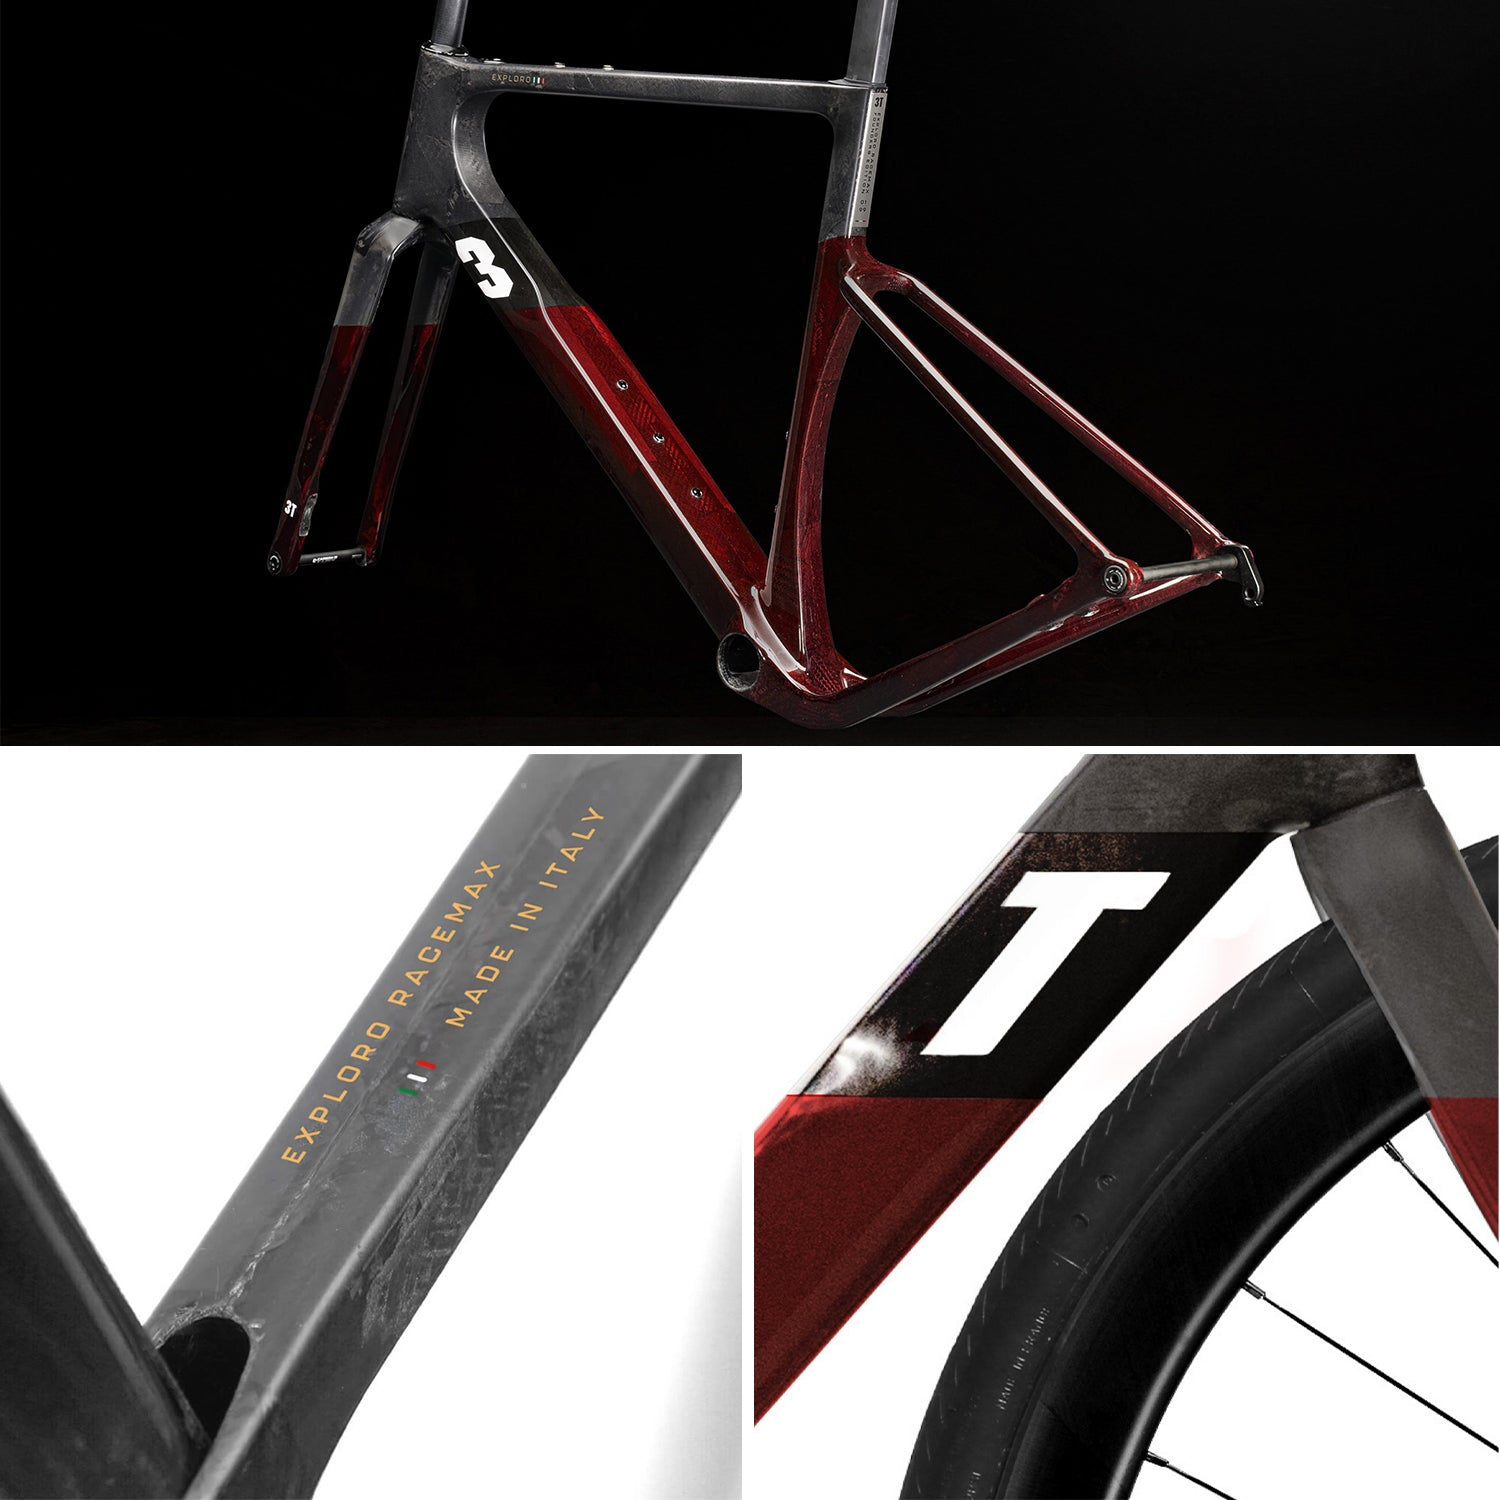 3t exploro racemax italia founders edition at contender bicycles